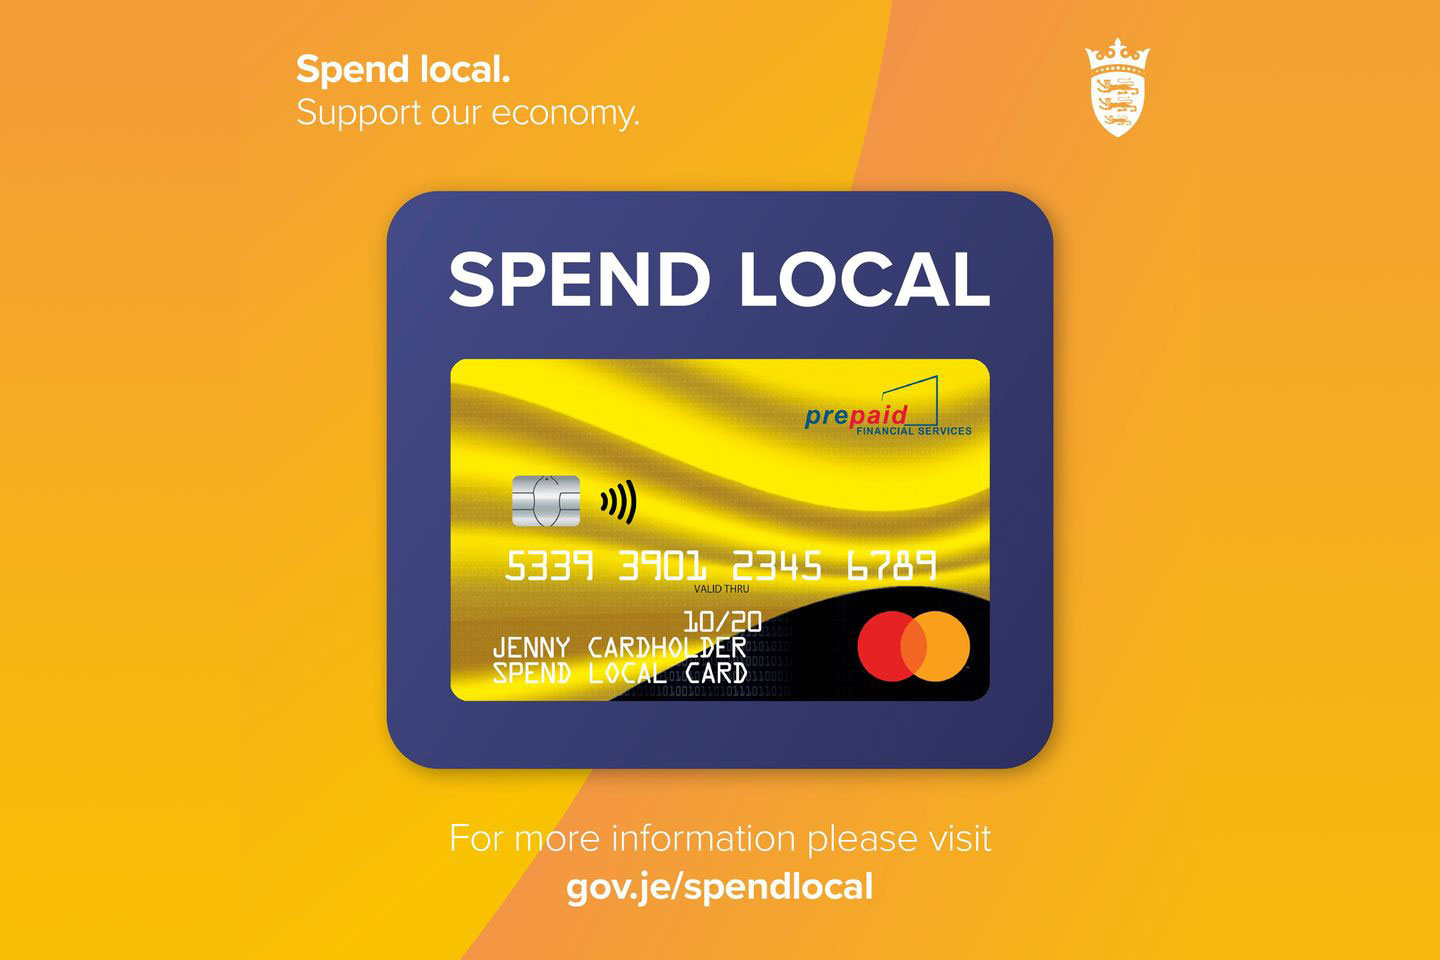 Jersey £100 Spend Local Card